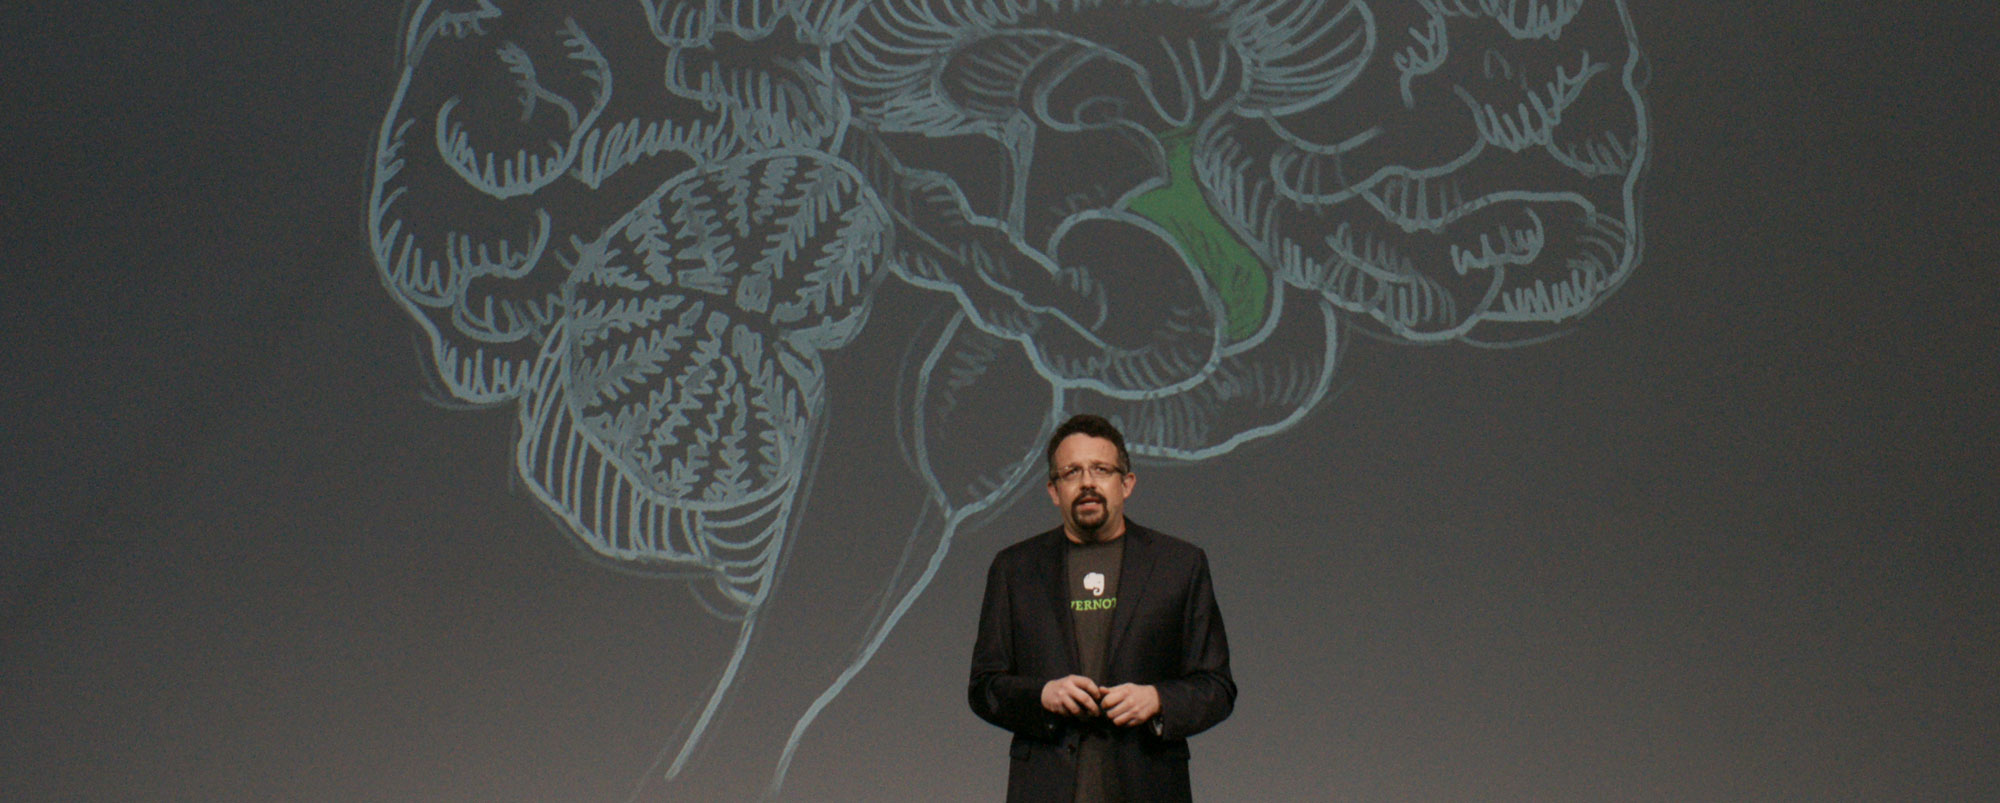 Evernote Announces a Ton of New Features at Conference